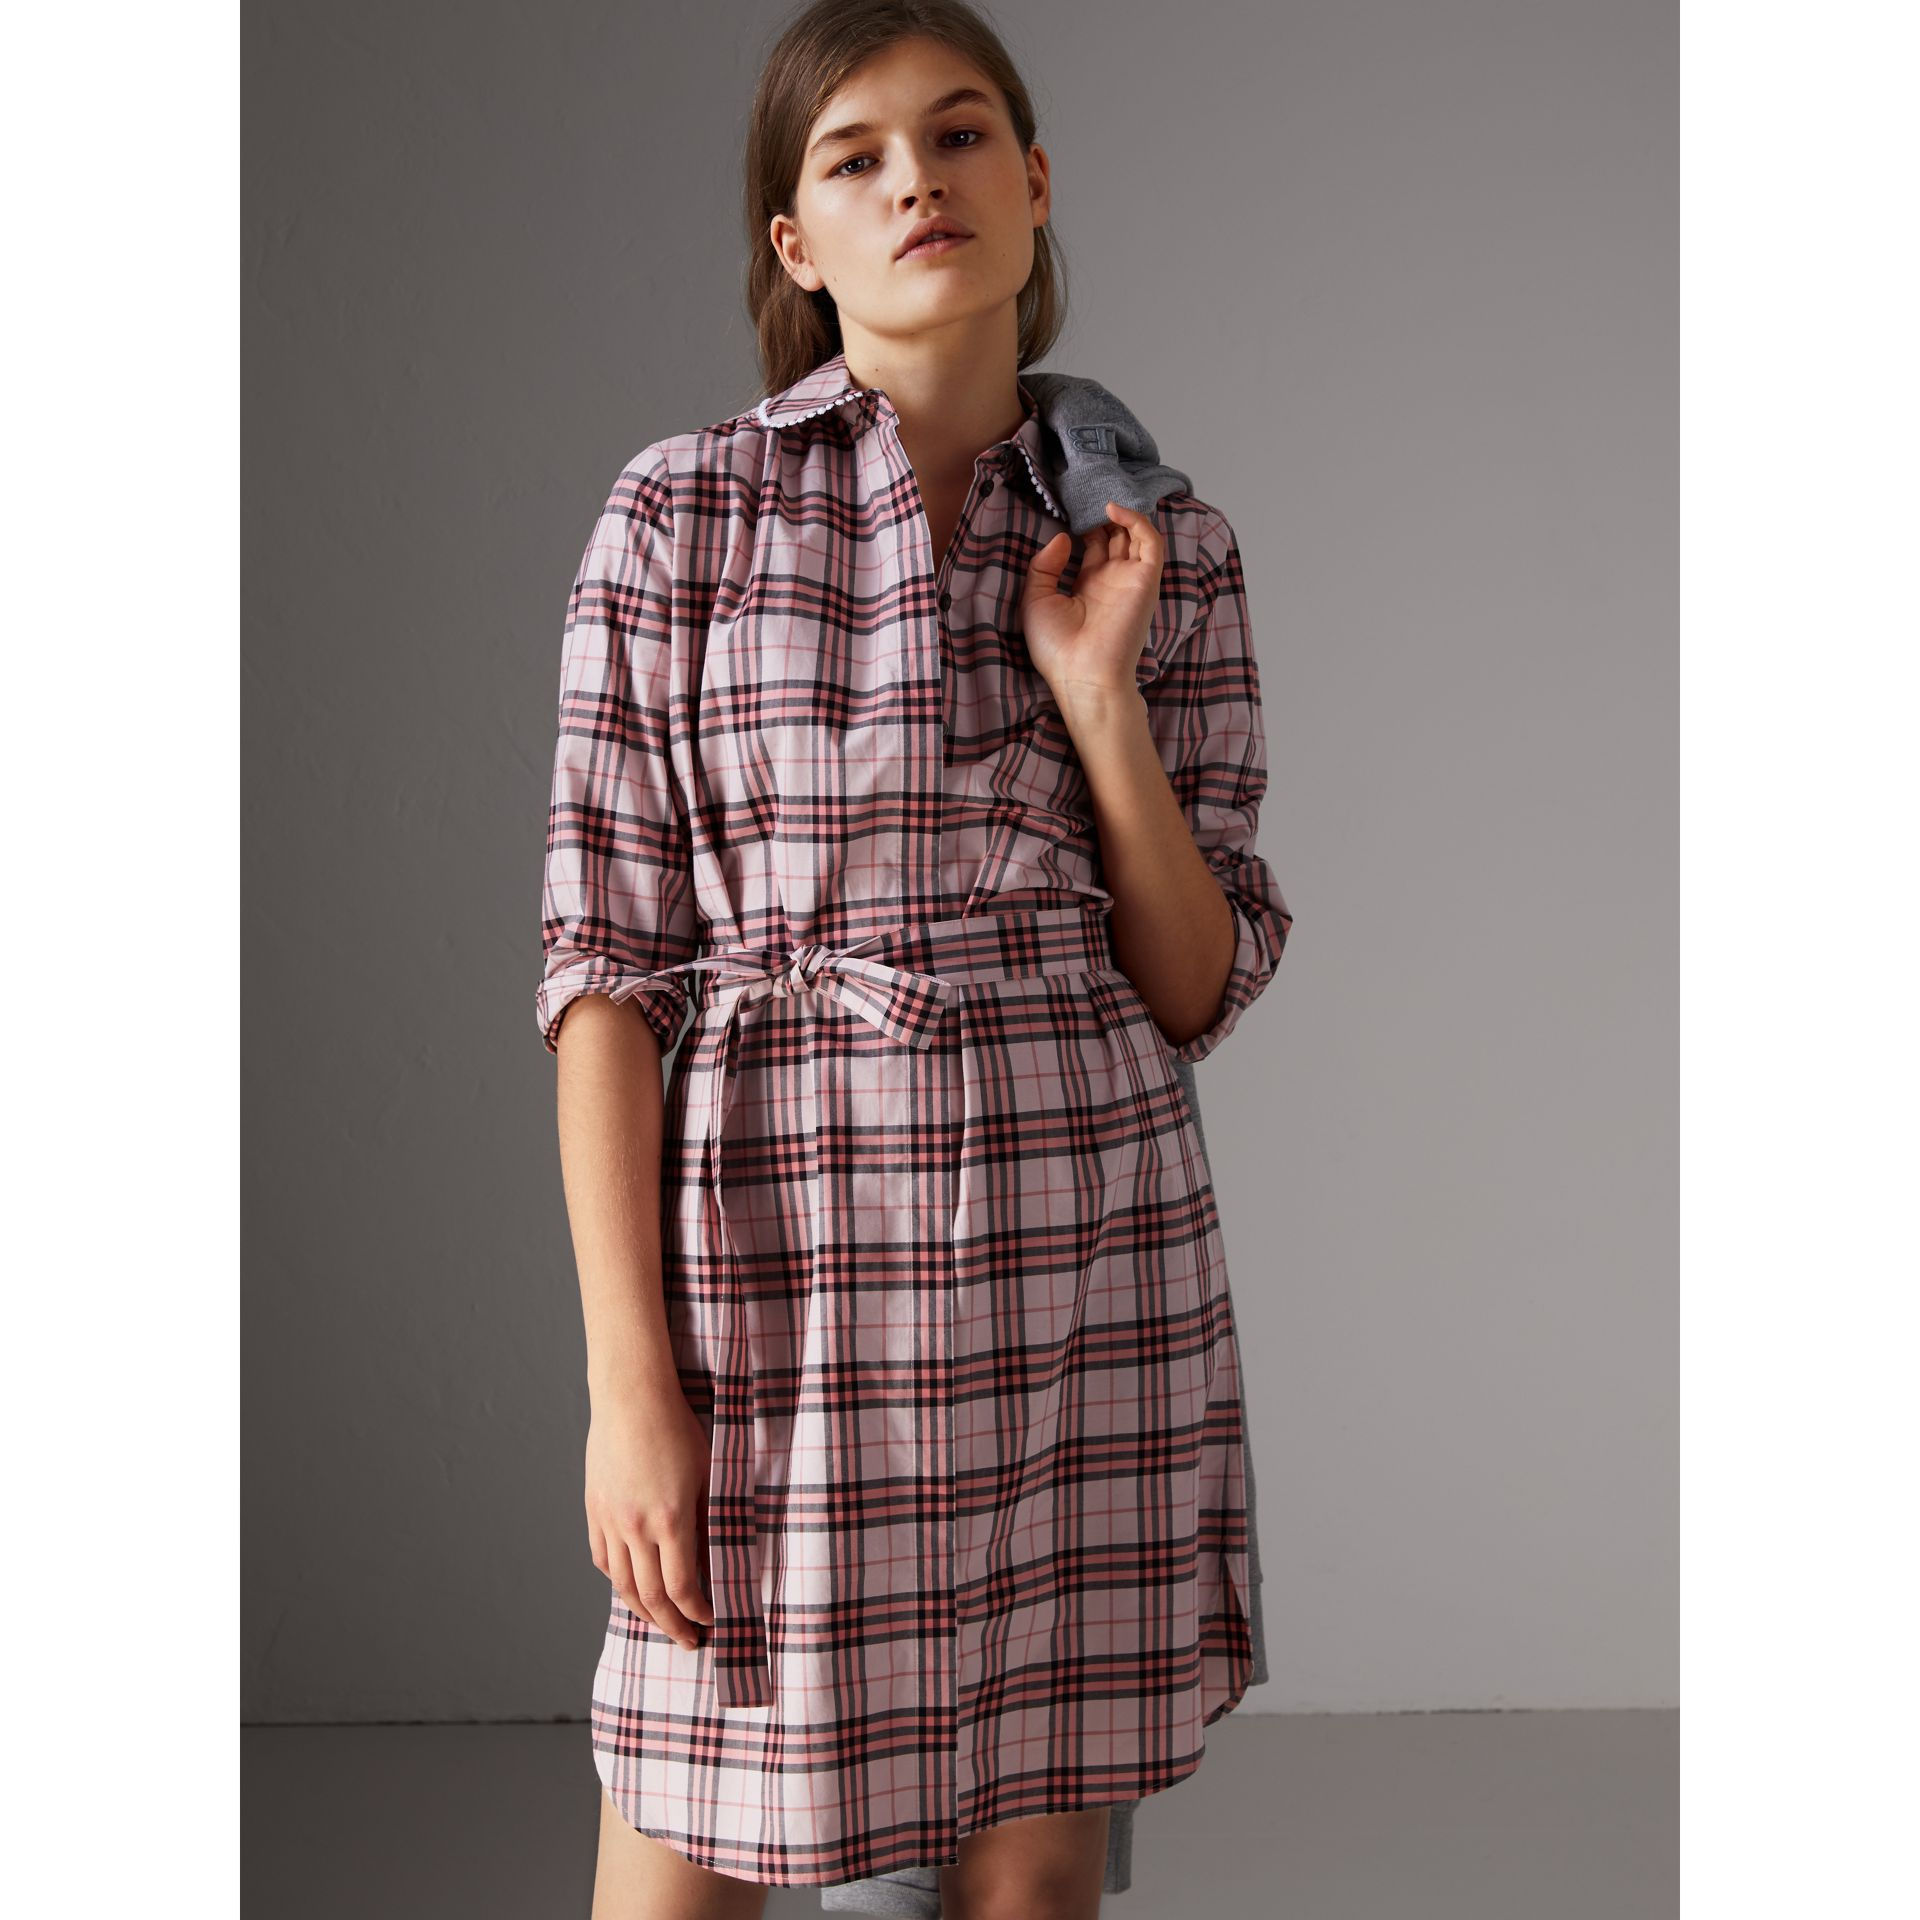 Lace Trim Collar Check Cotton Shirt Dress in Pink Azalea - Women | Burberry Singapore - gallery image 4